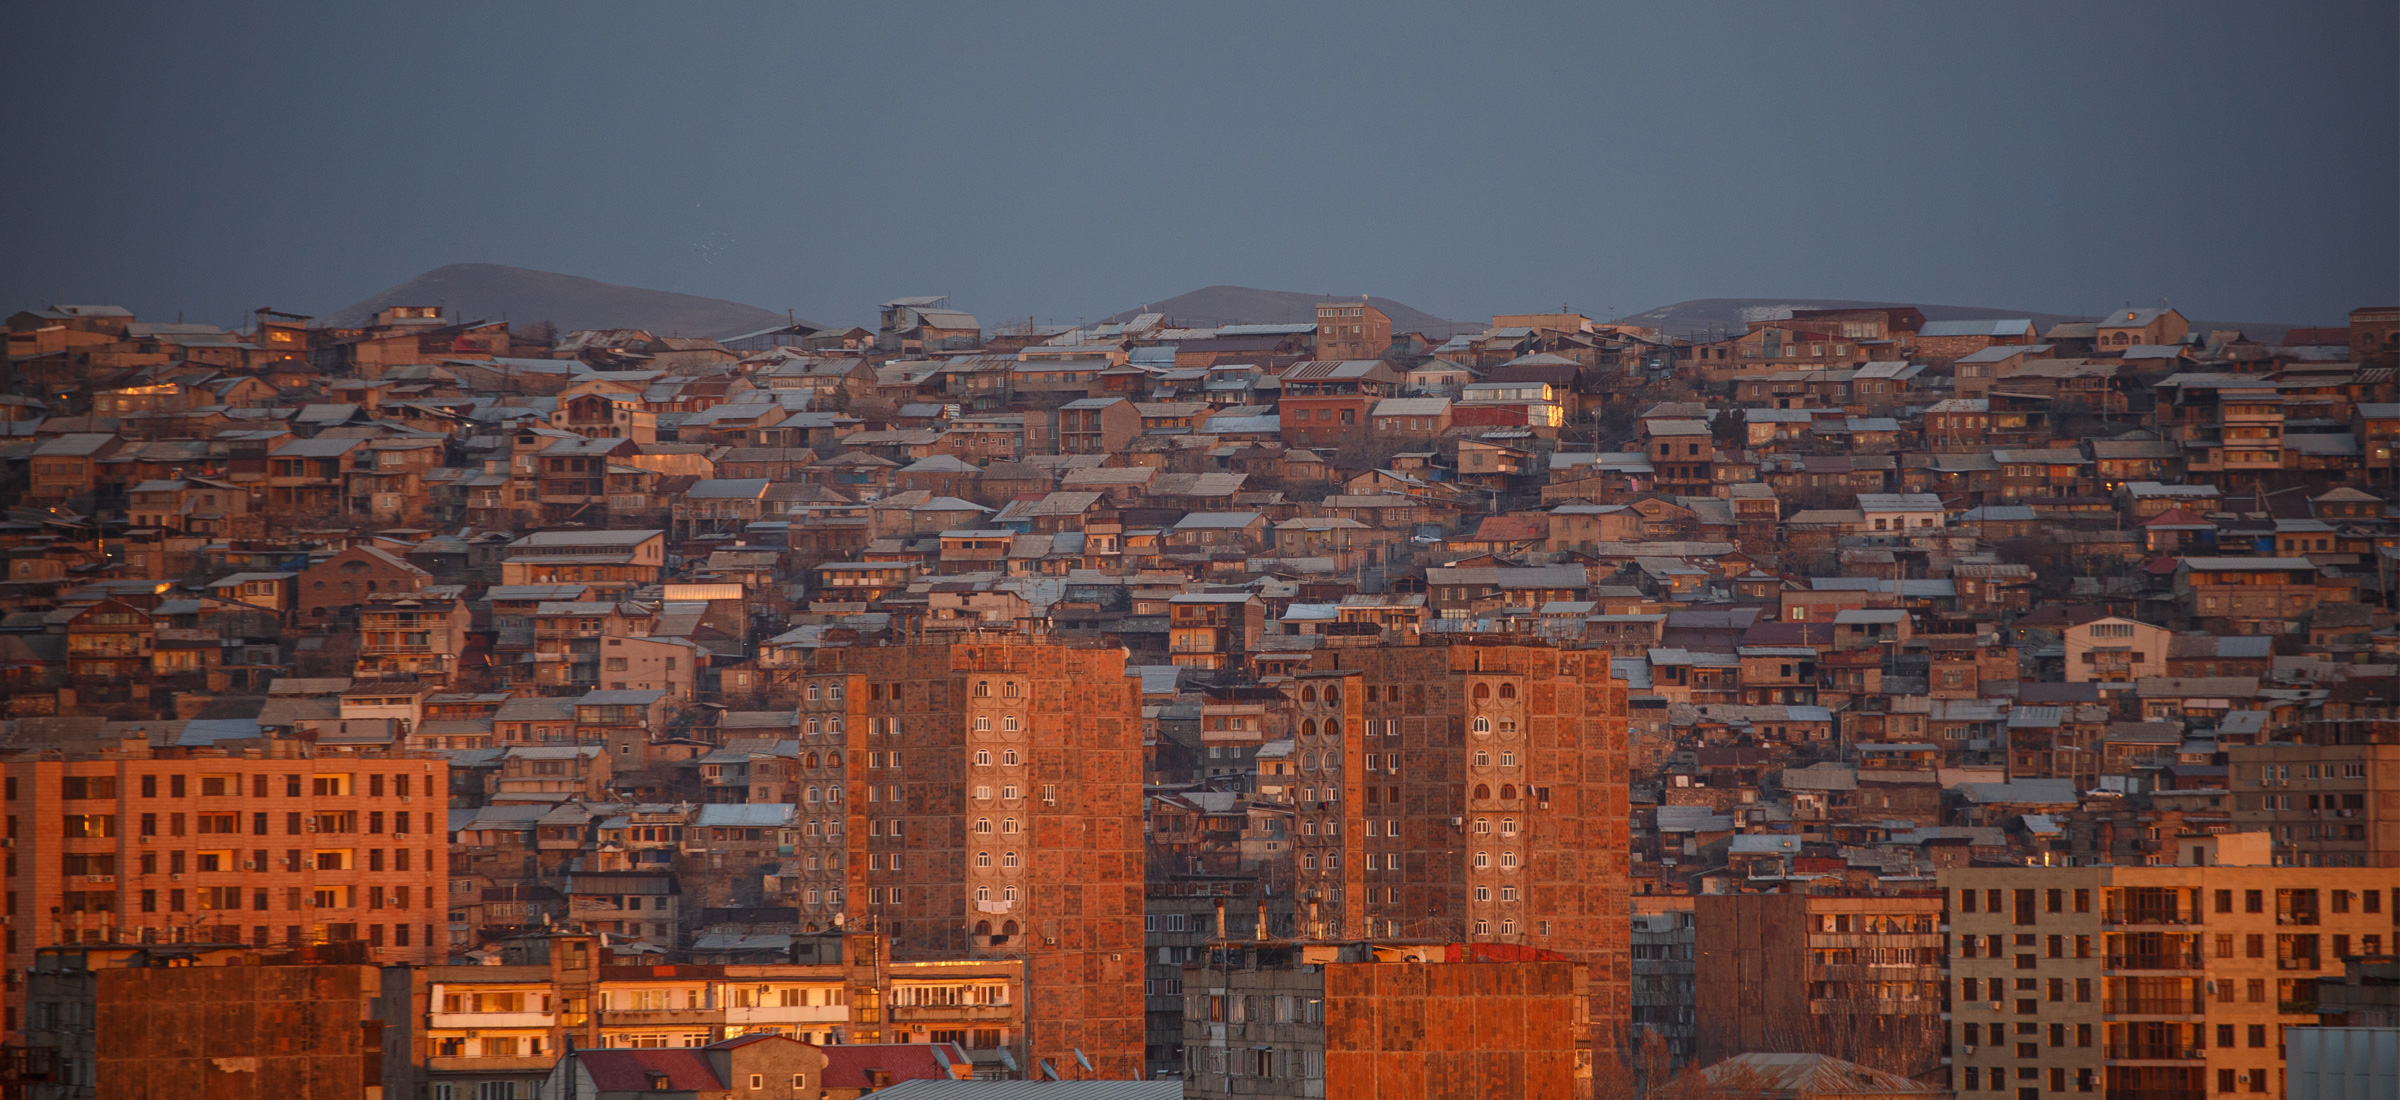 Letter from Yerevan: as the clouds of conflict fade, creativity offers new hope